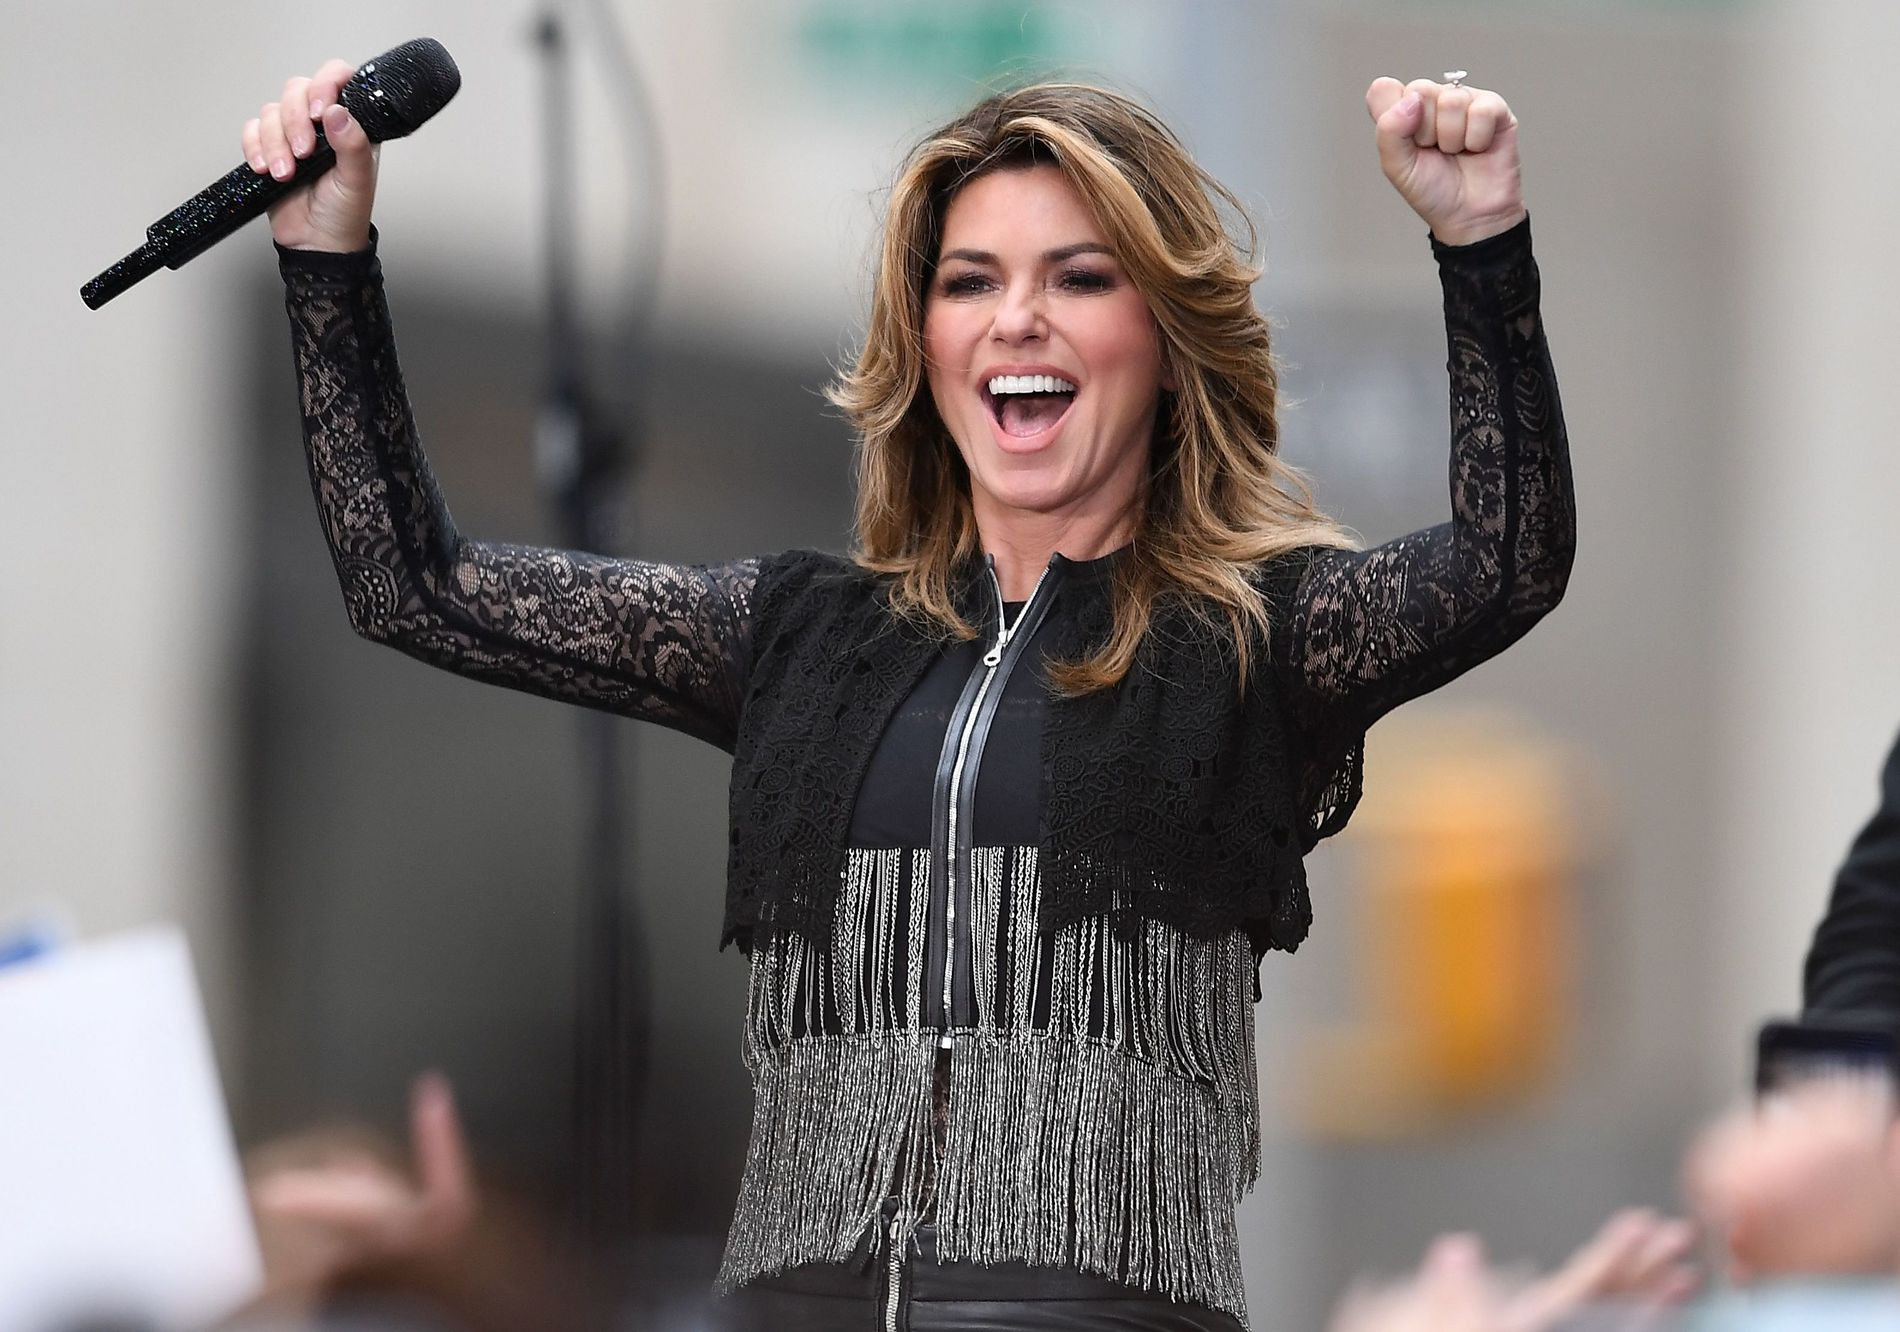 OPPTREDEN: Shania Twain på «The Today Show» i New York fredag.